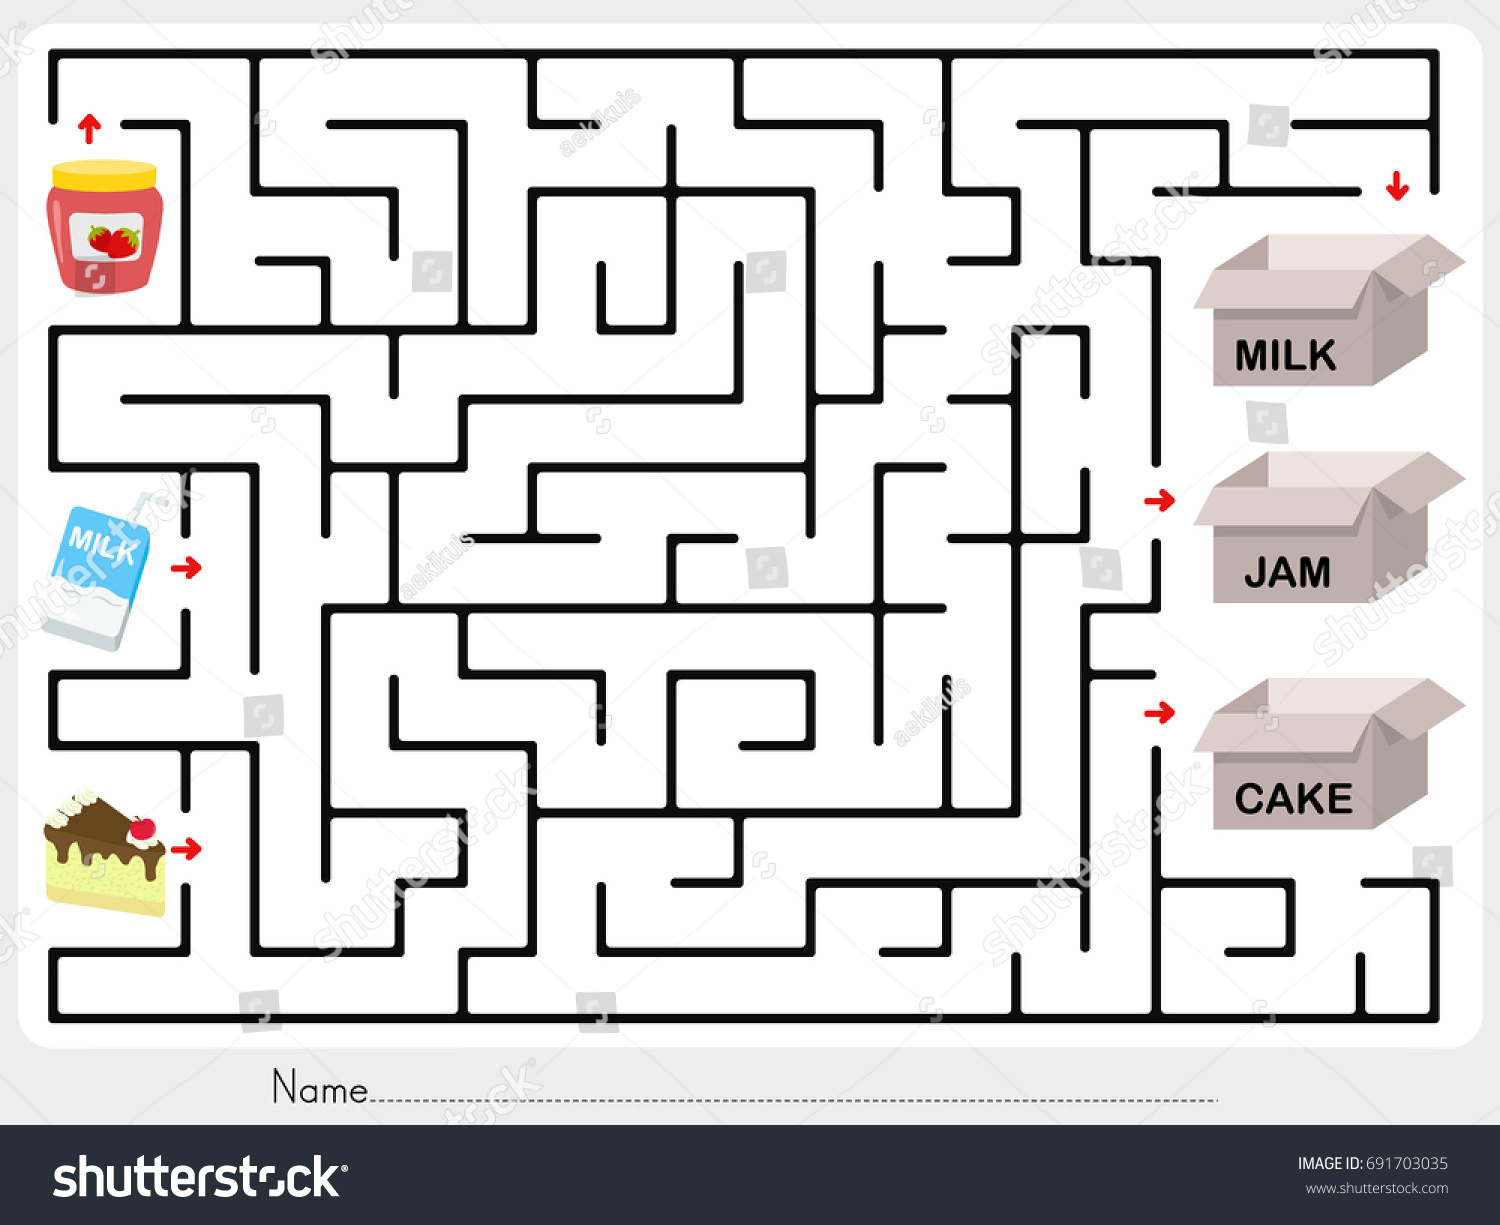 Maze Game Pick Jam Milk Cake Stock Vector